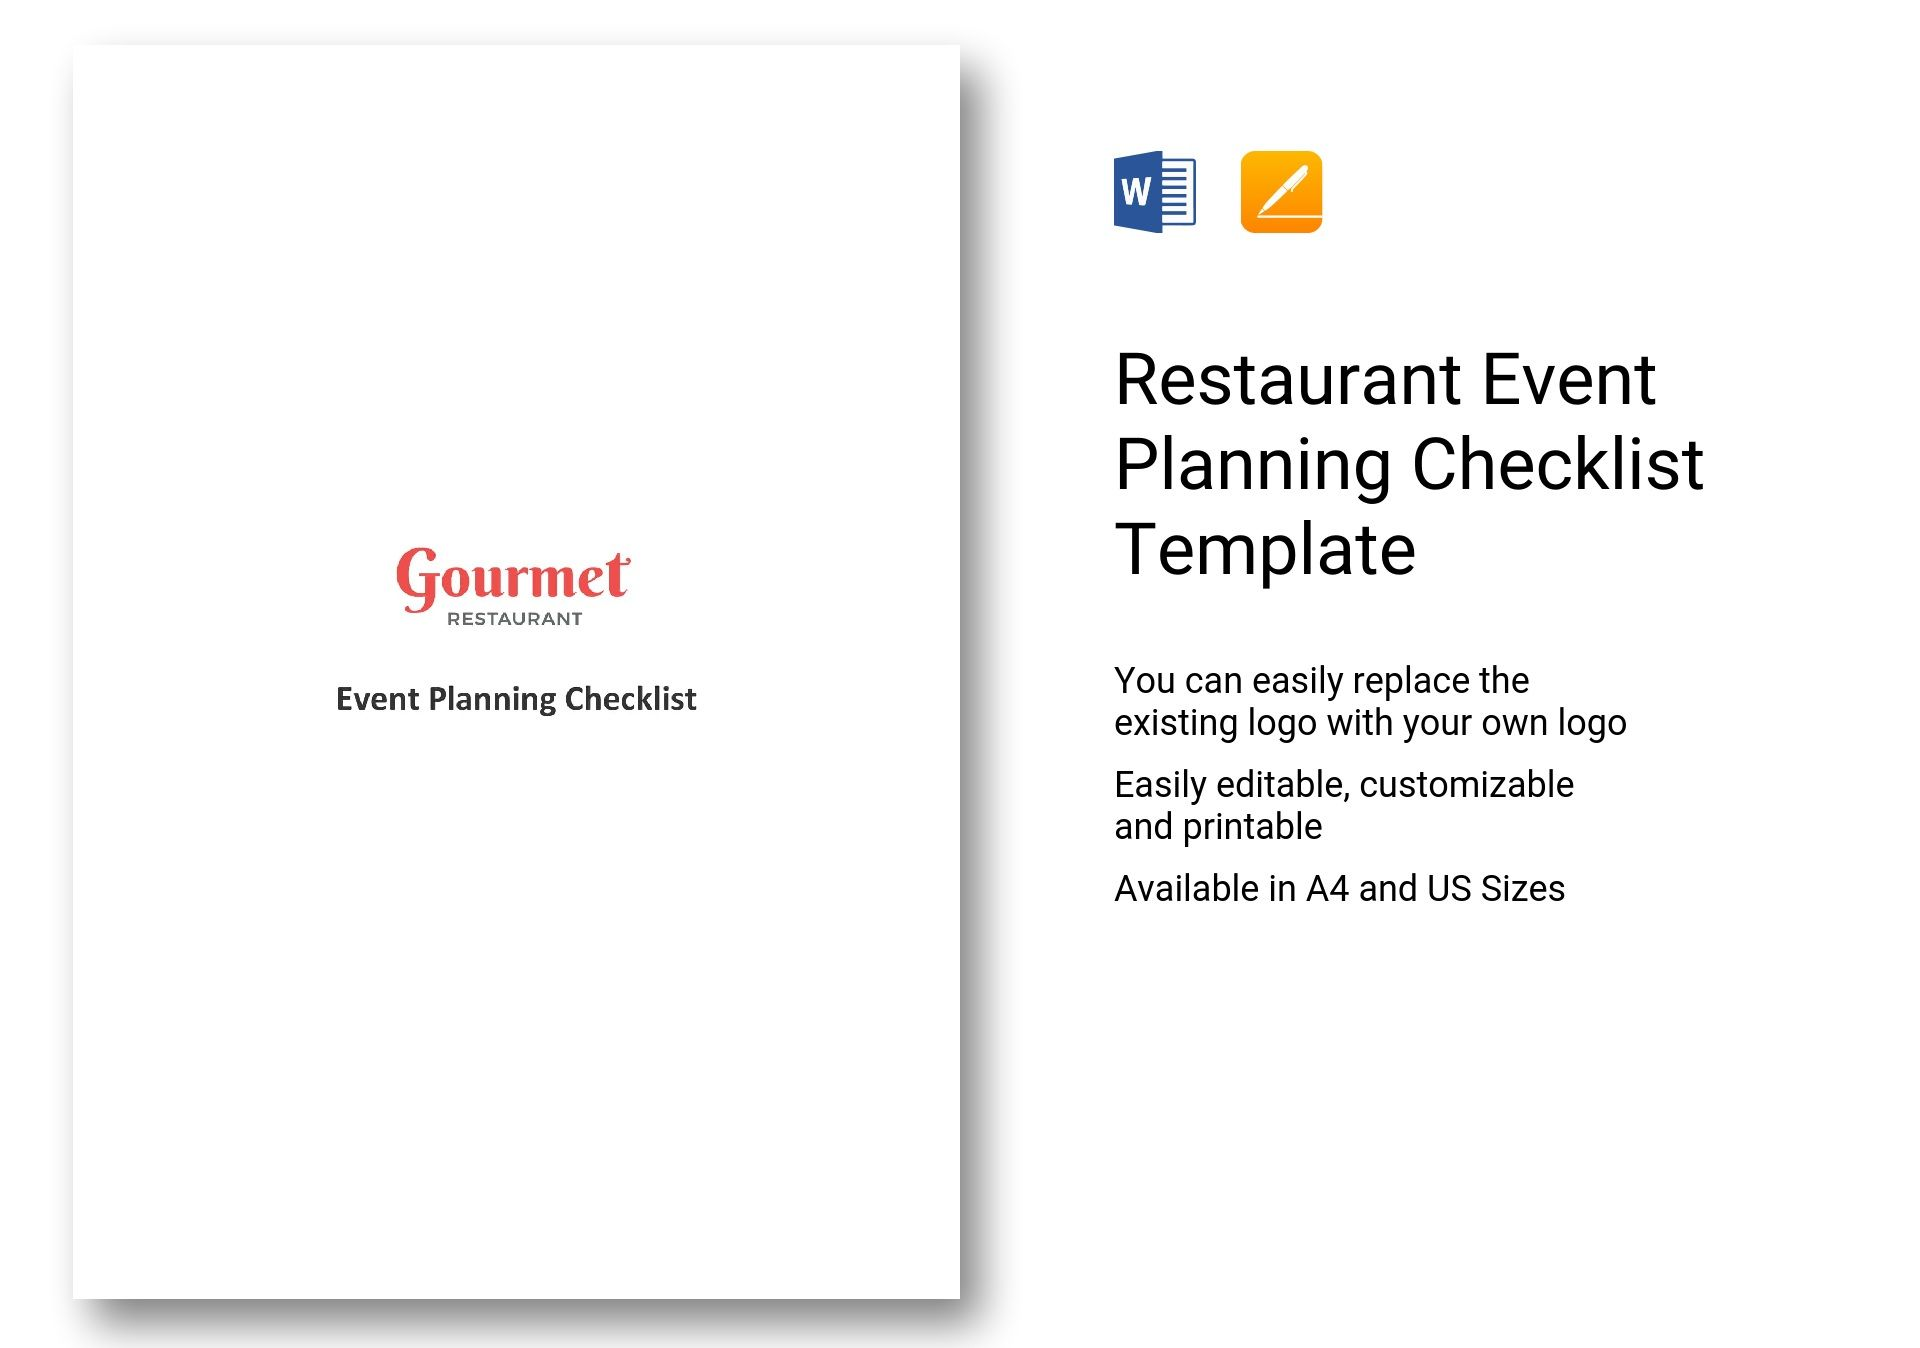 Restaurant Event Planning Checklist Template In Ms Word Pages